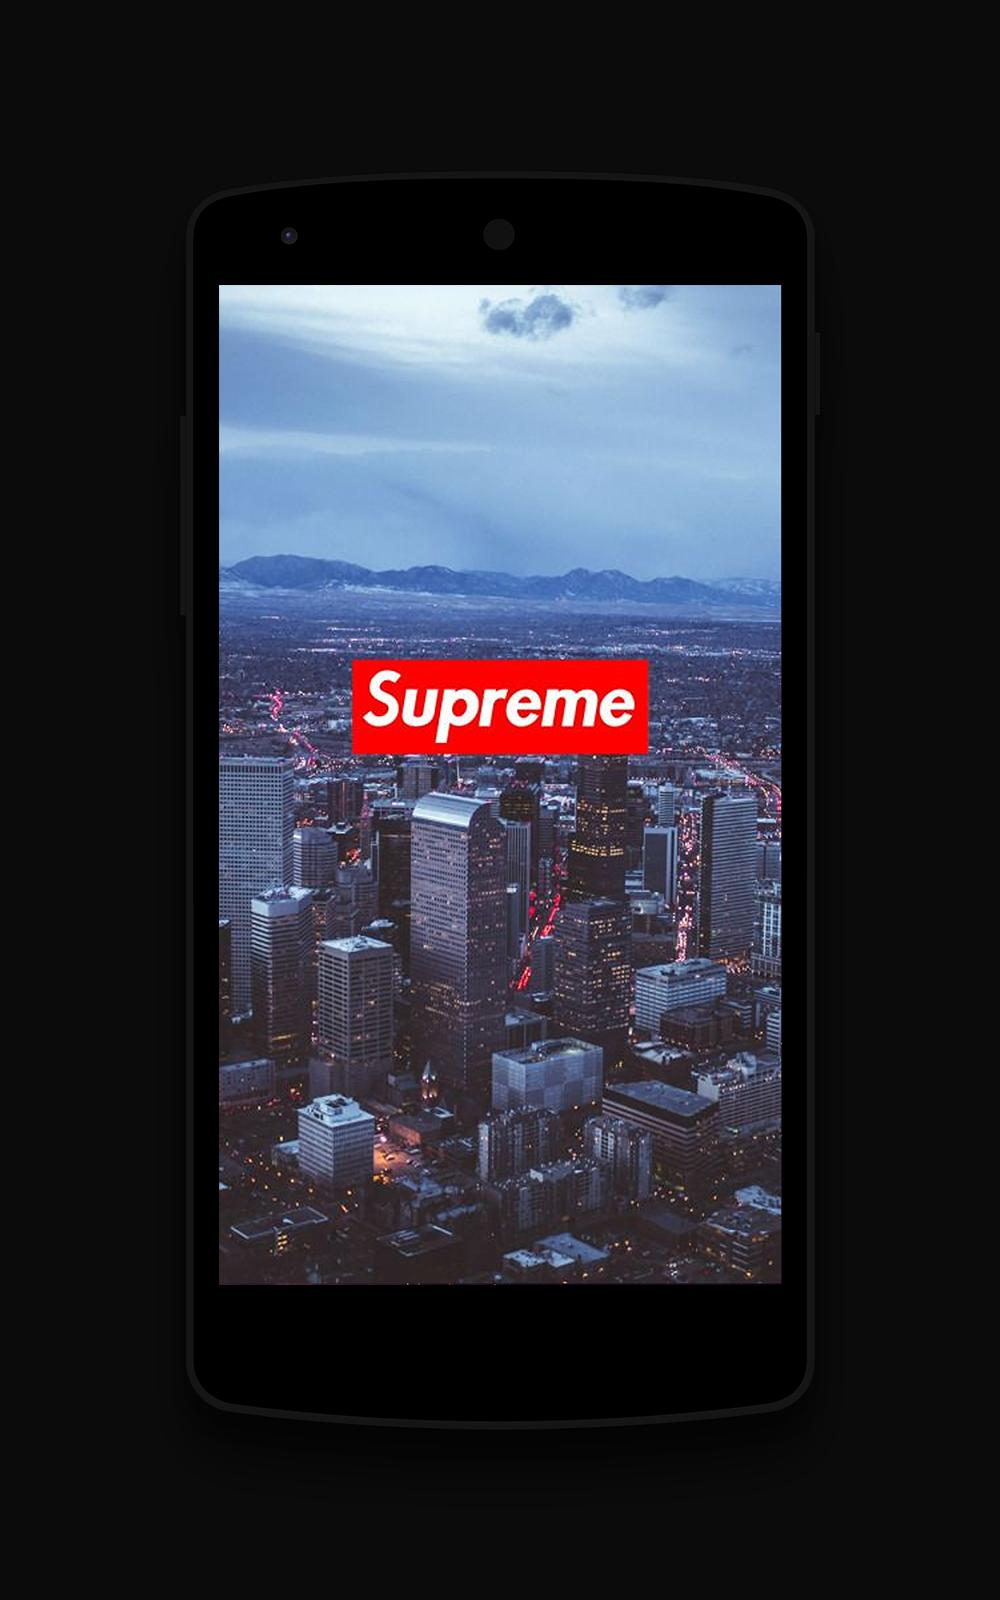 Hypebeast Wallpapers for Android   APK Download 1000x1600